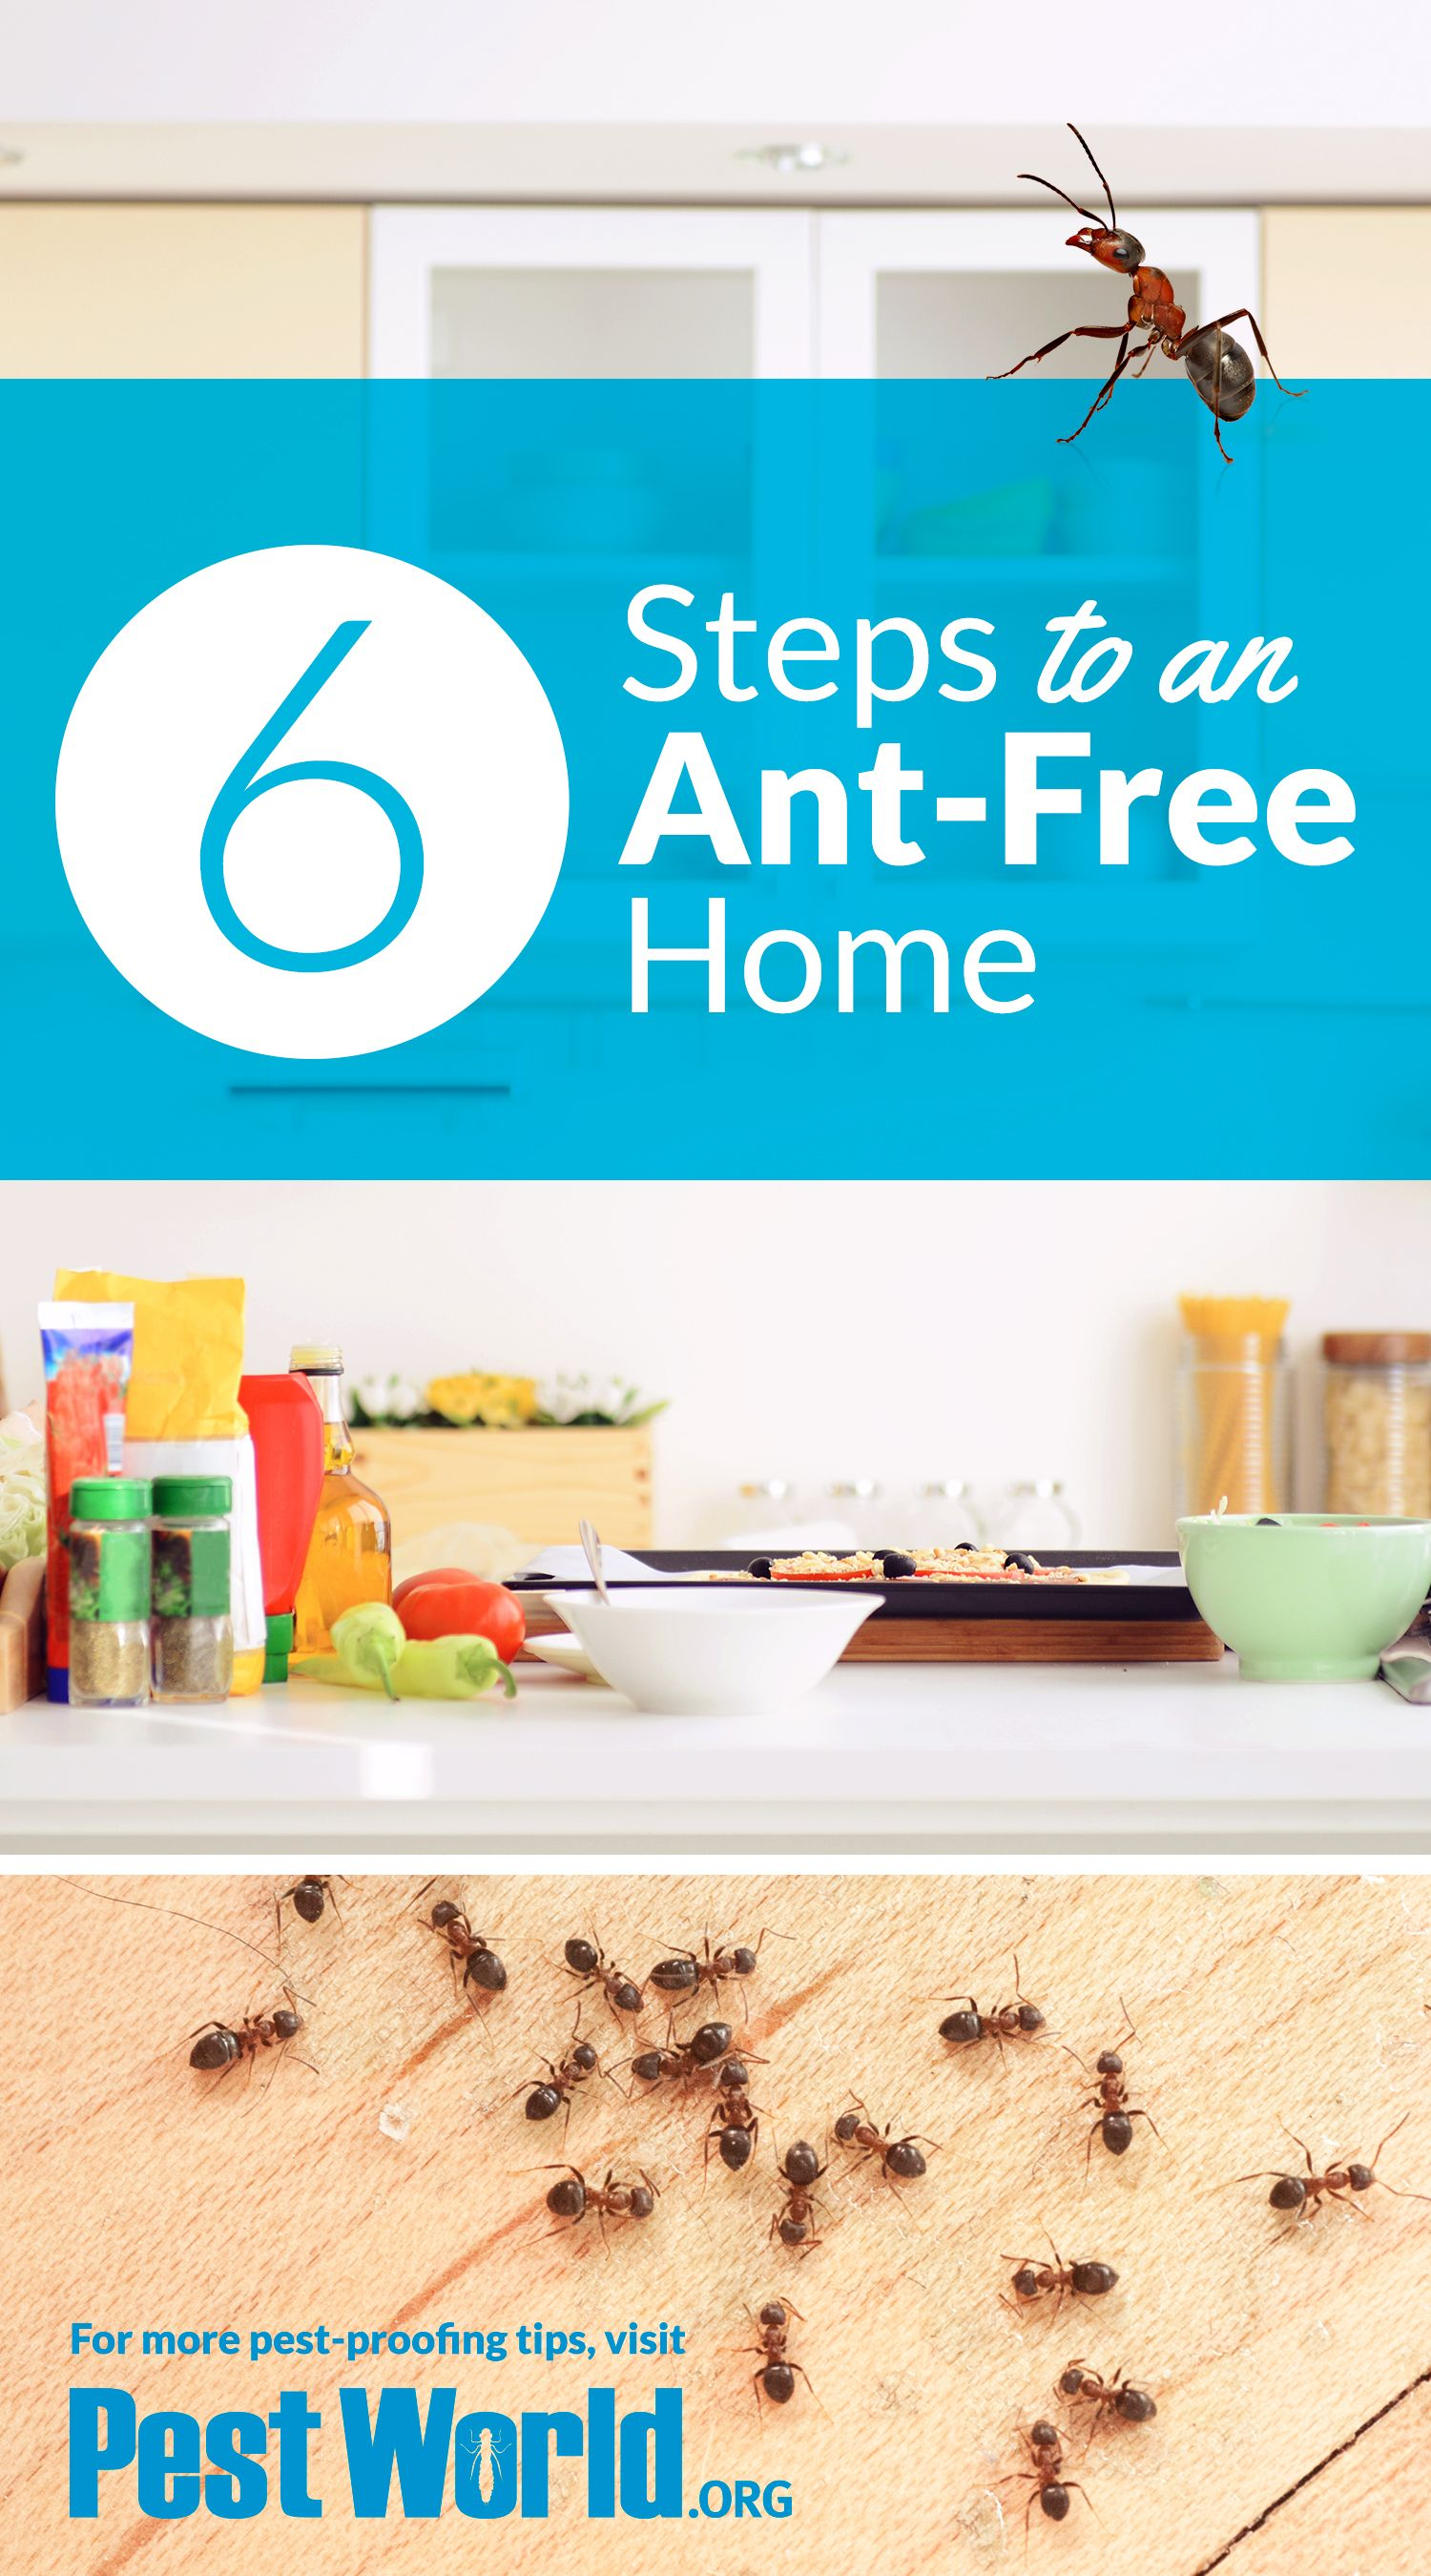 How To Get Rid Of Ants In Your Home Rid Of Ants Get Rid Of Ants Termite Control